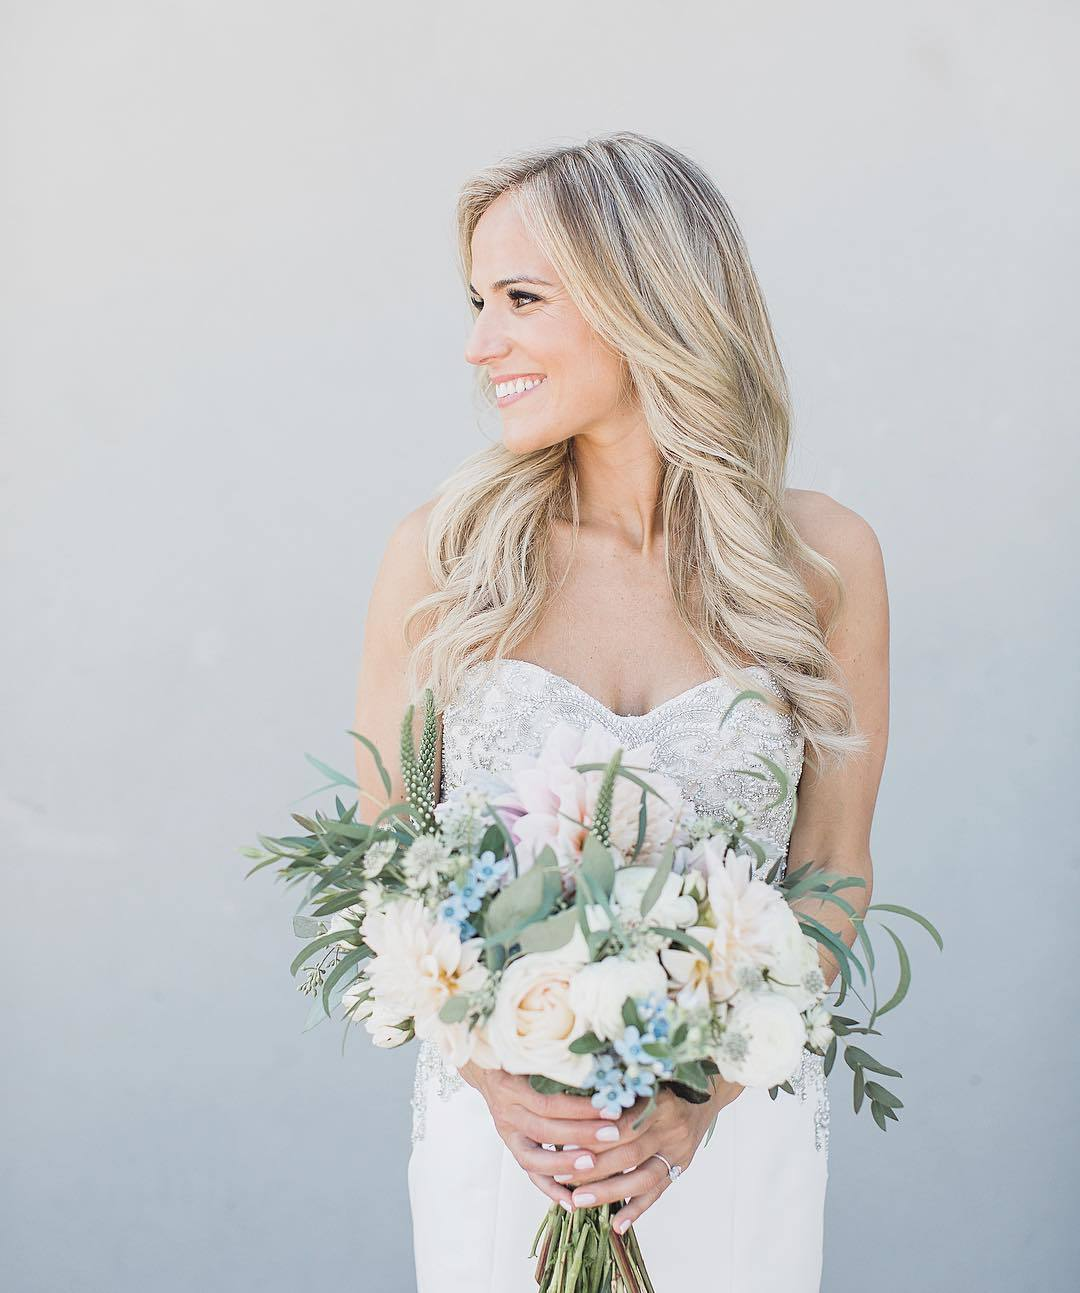 47 Stunning Wedding Hairstyles All Brides Will Love